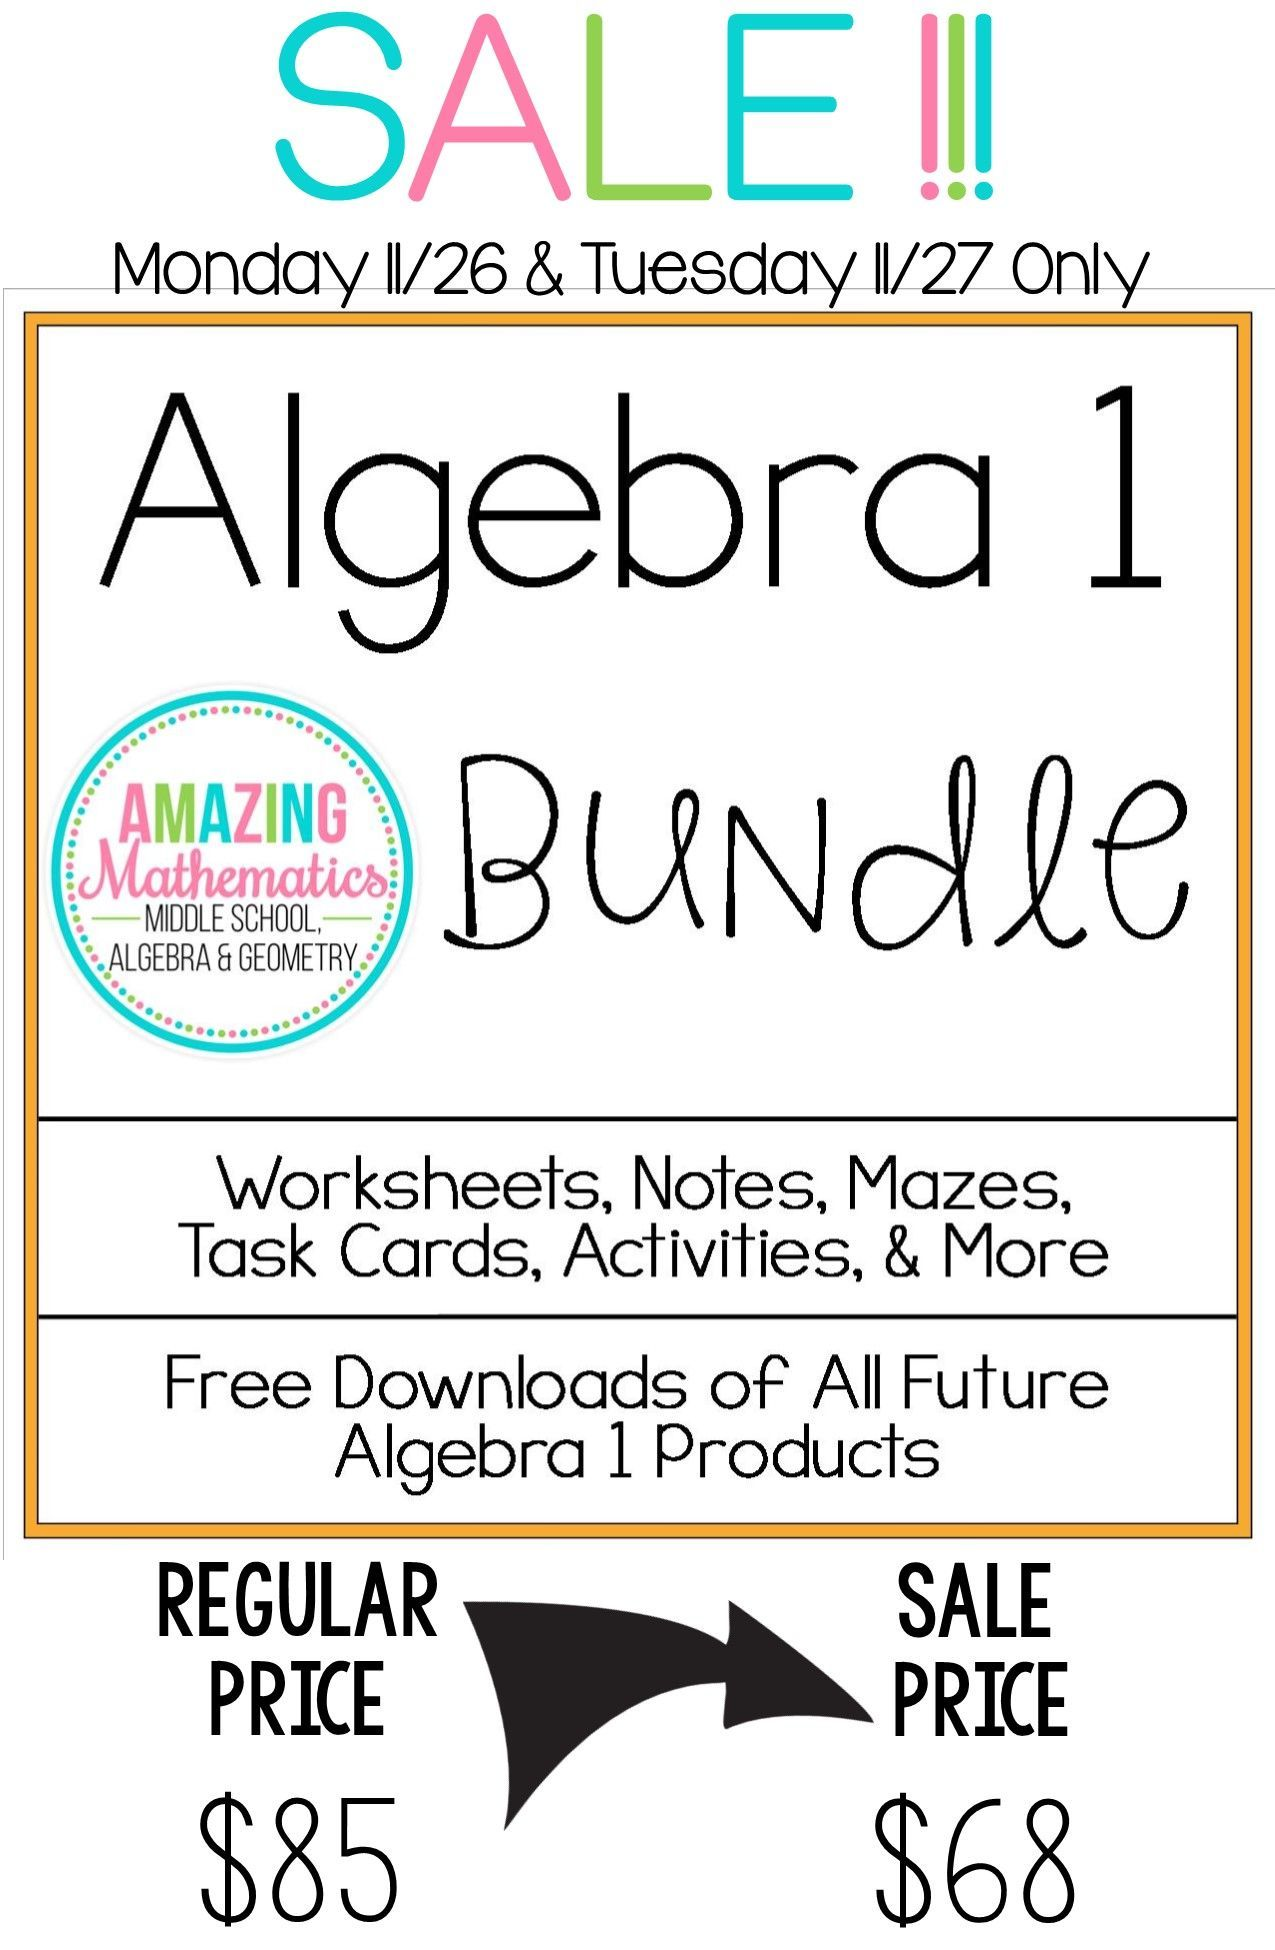 Algebra 1 Bundle All My Algebra Products For 1 Low Price